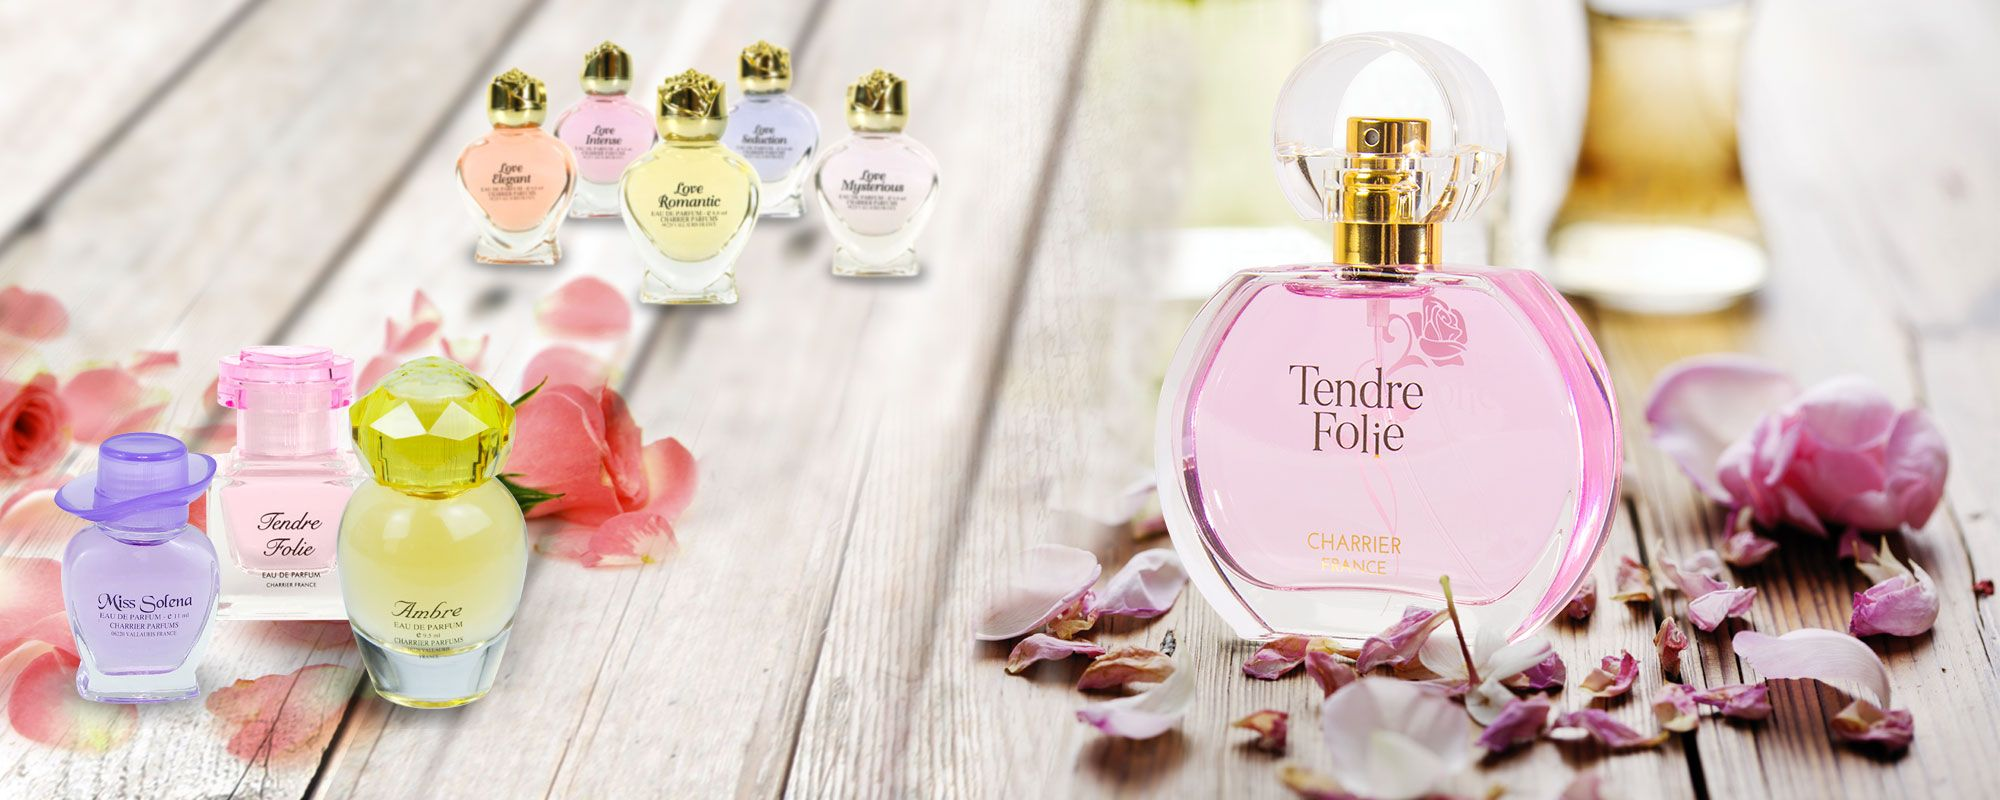 Charrier Parfums France Creator Of The Miniature Perfume Set And